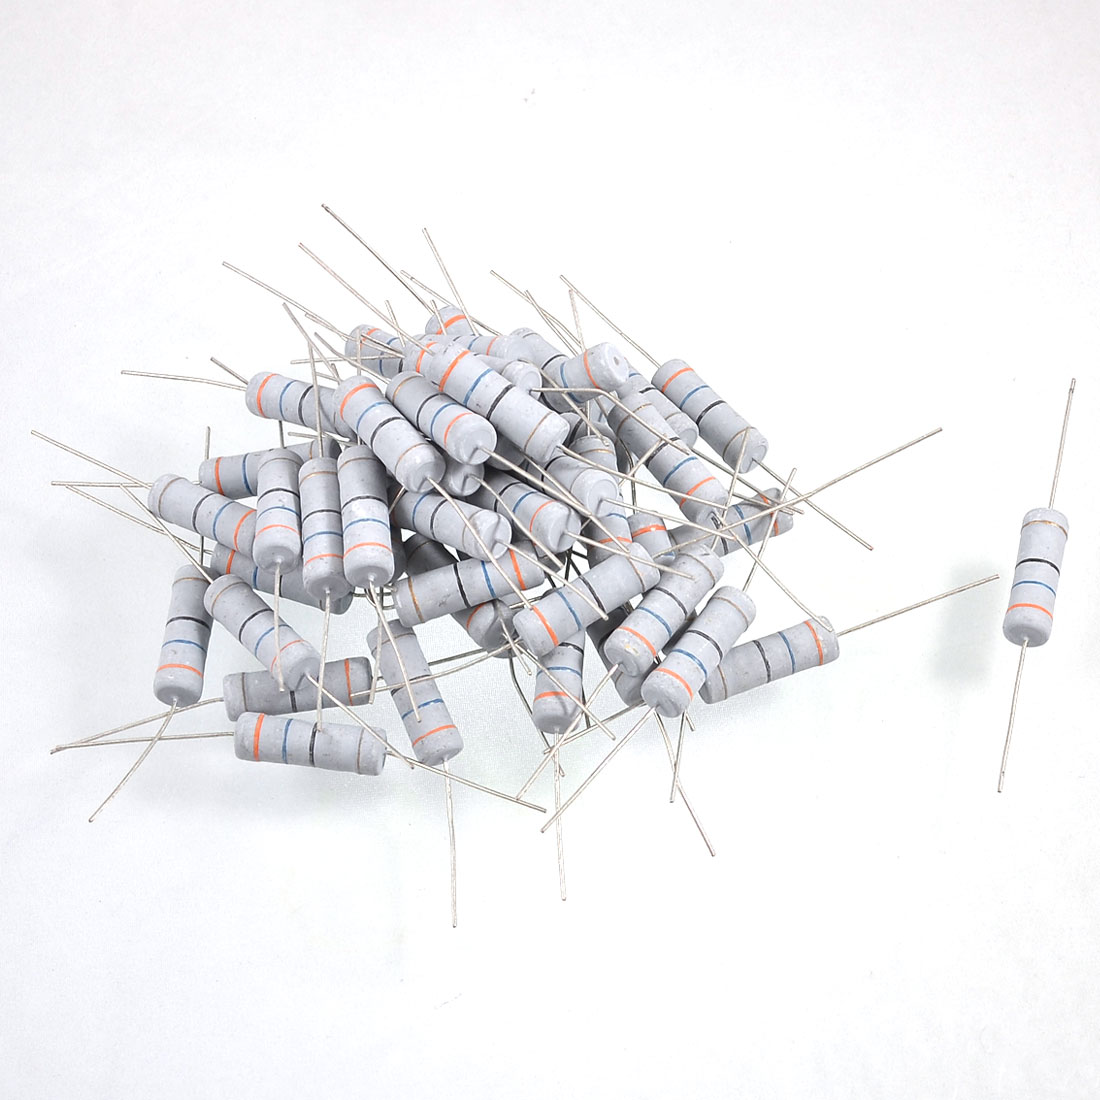 500V 5W Watt 36 Ohm 5% Axial Carbon Film Resistor 50 Pcs